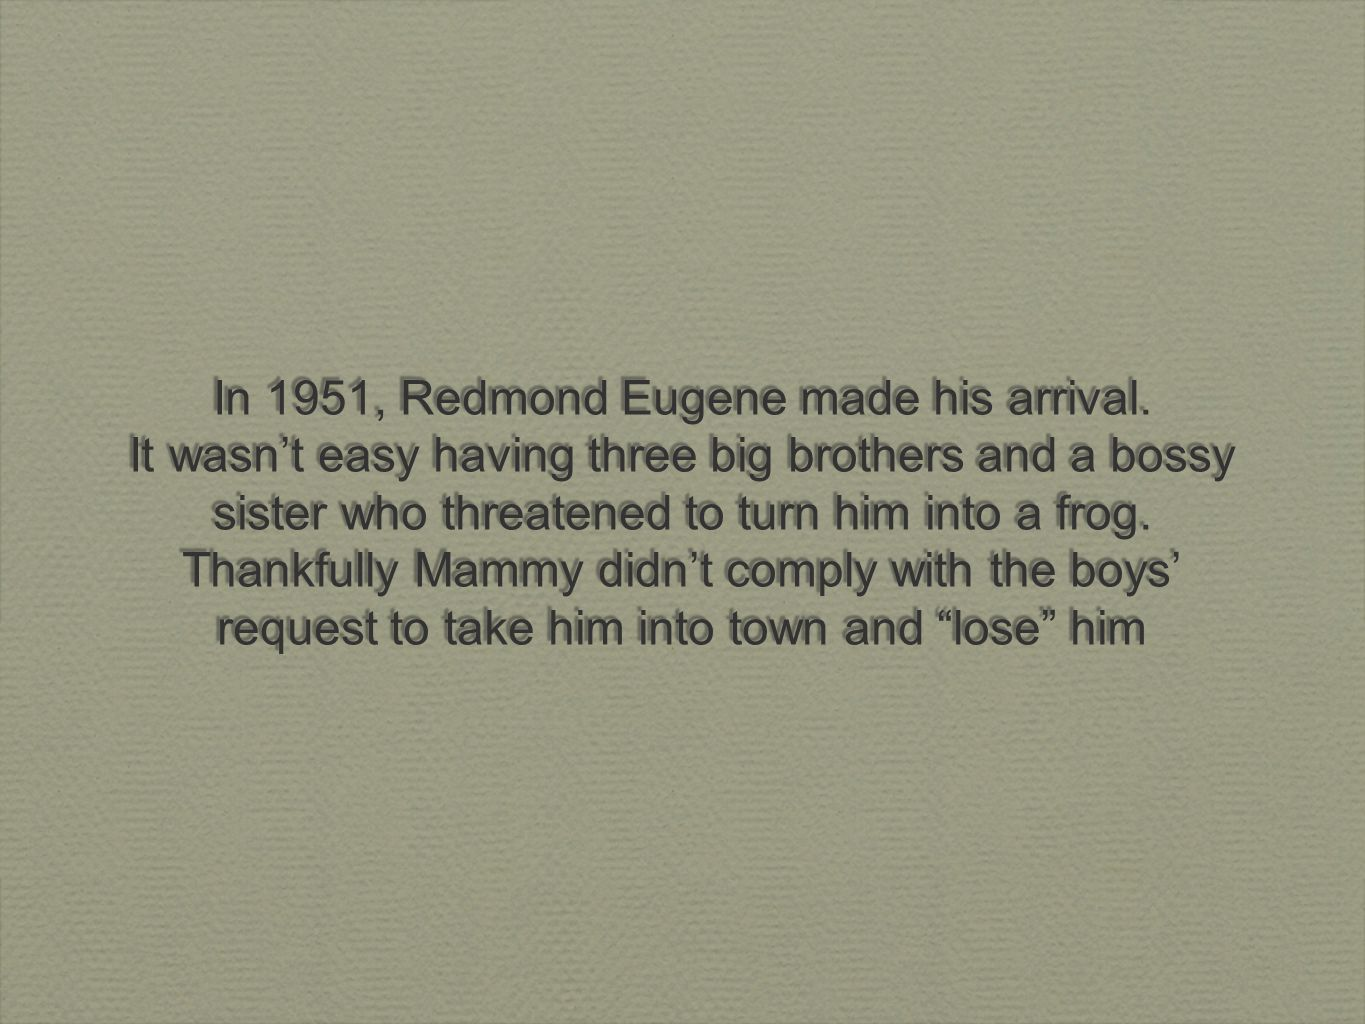 In 1951, Redmond Eugene made his arrival.